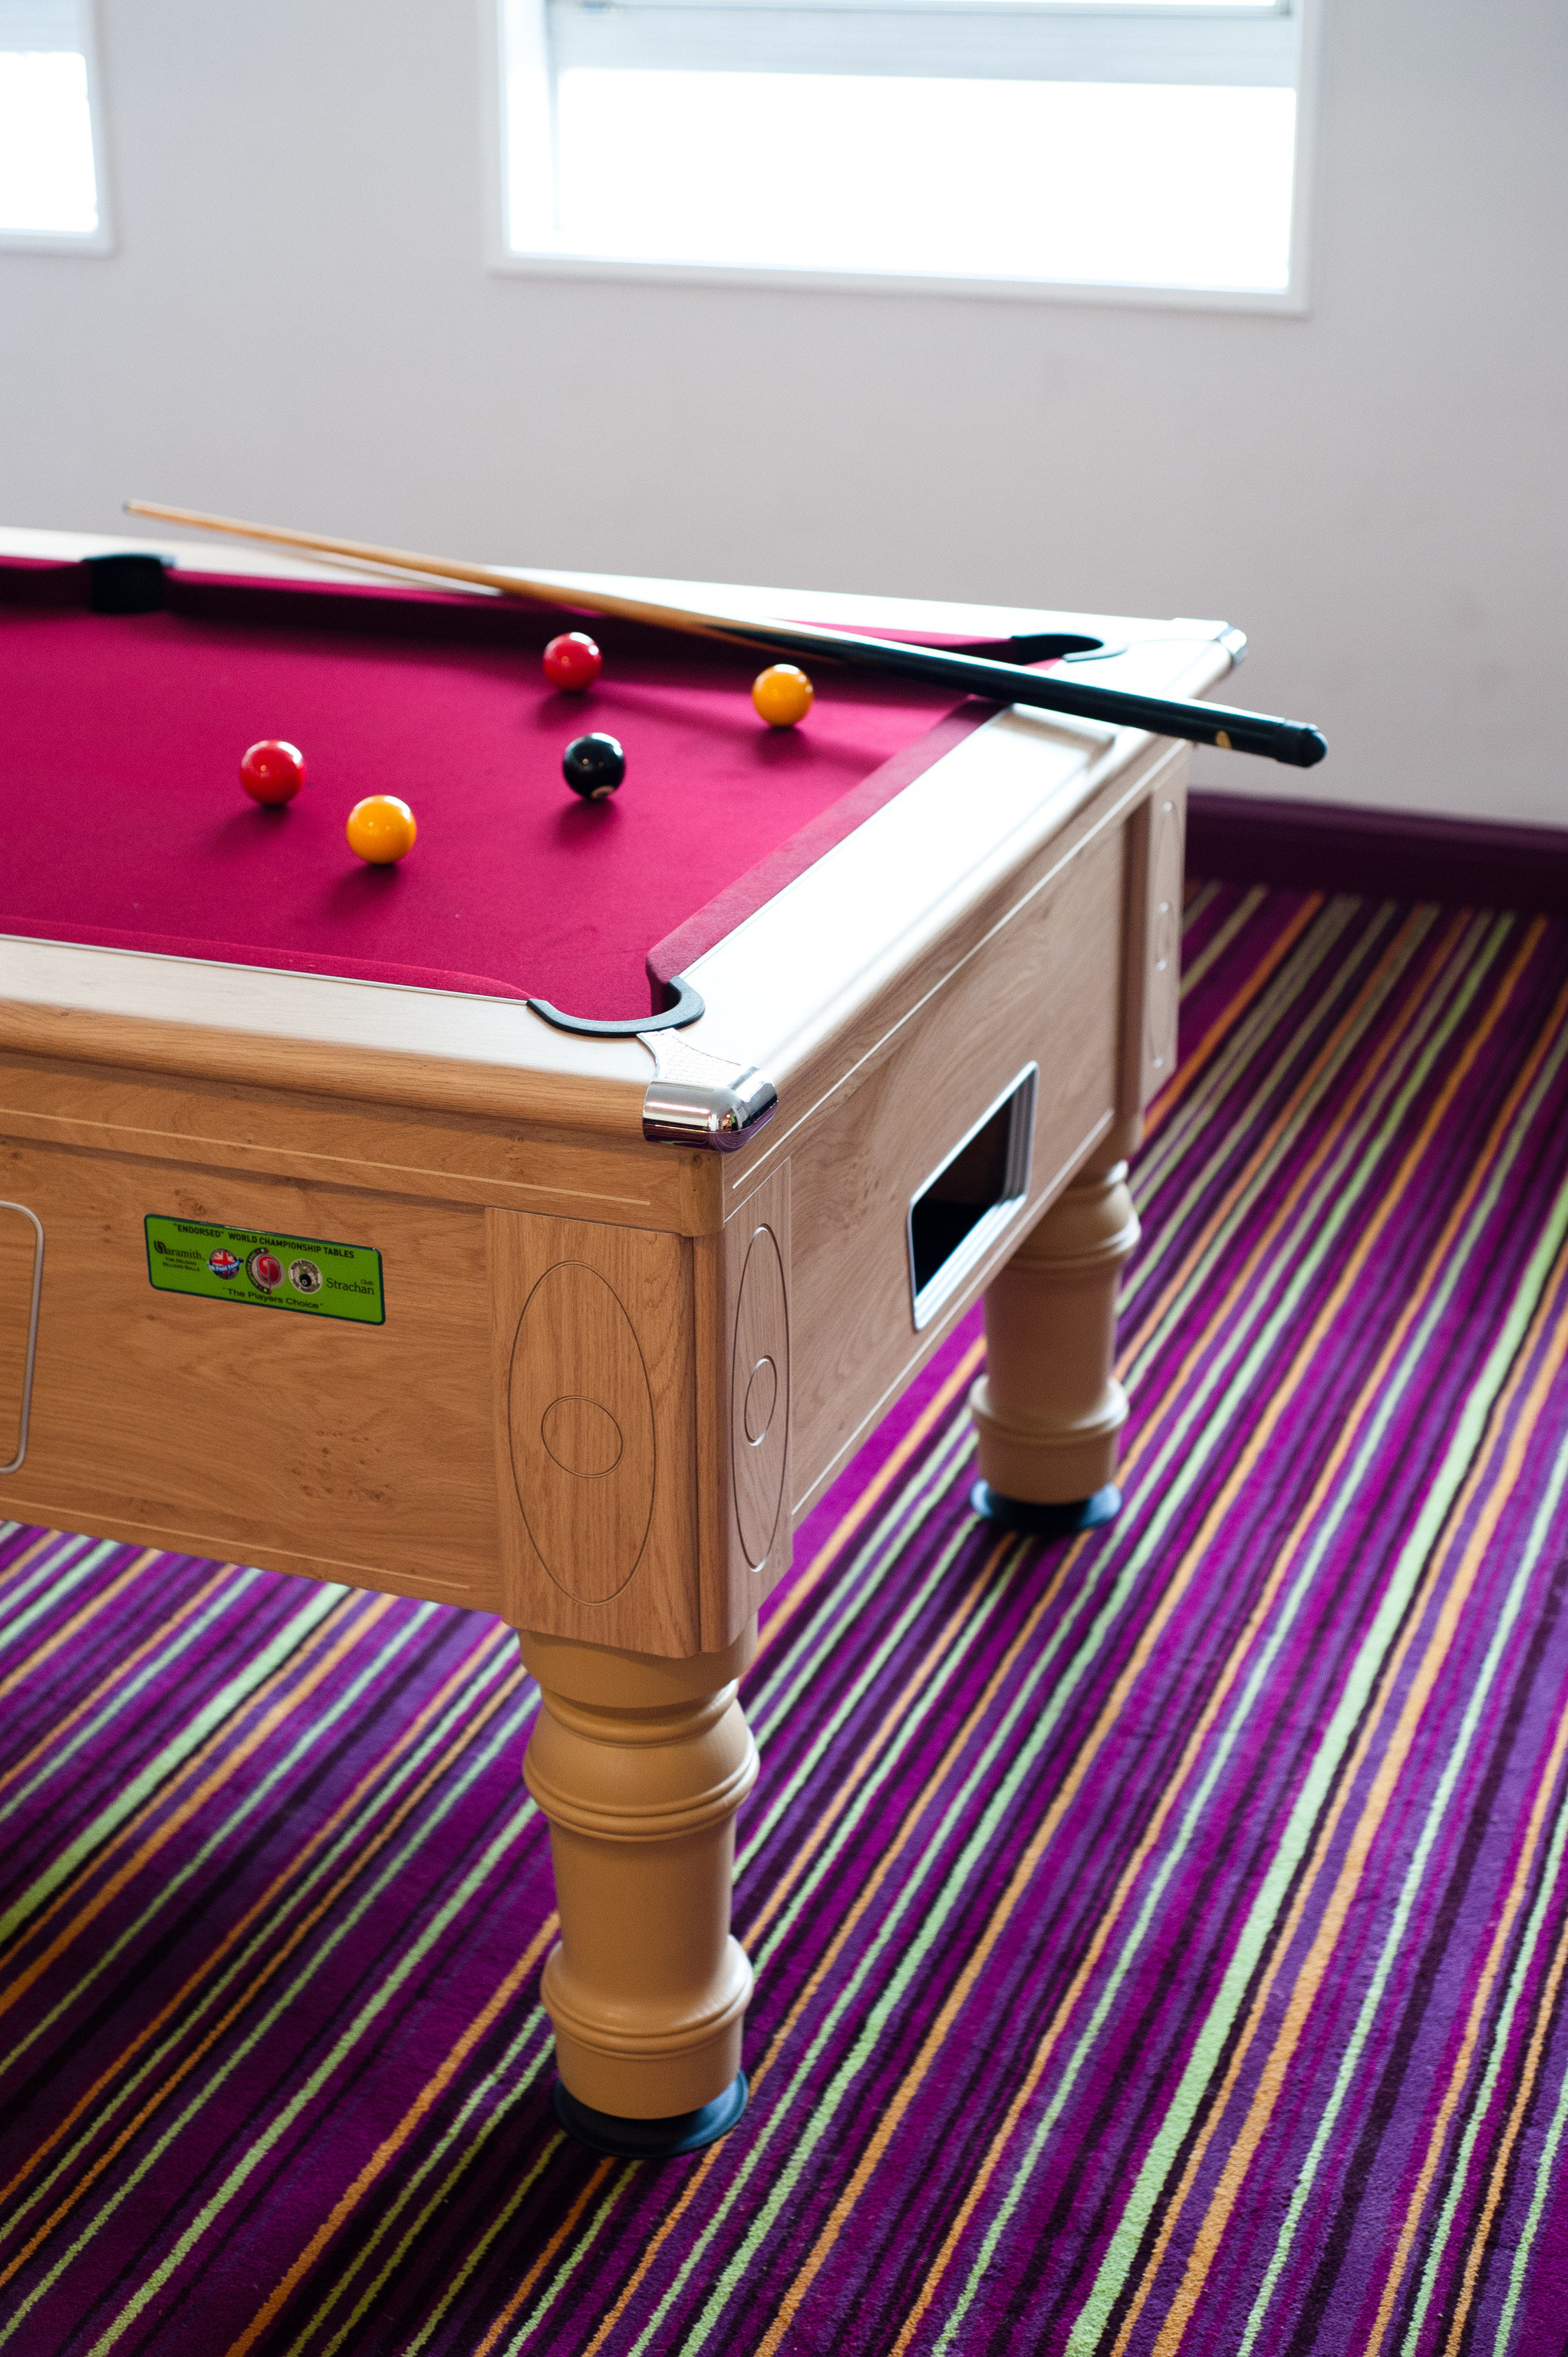 Budget pool table indoor floor Pool cue sports poolroom wall carom billiards billiard table table indoor games and sports recreation room games room snooker billiard room pool ball sports furniture english billiards hardwood Play recreation cue stick pocket billiards gambling house